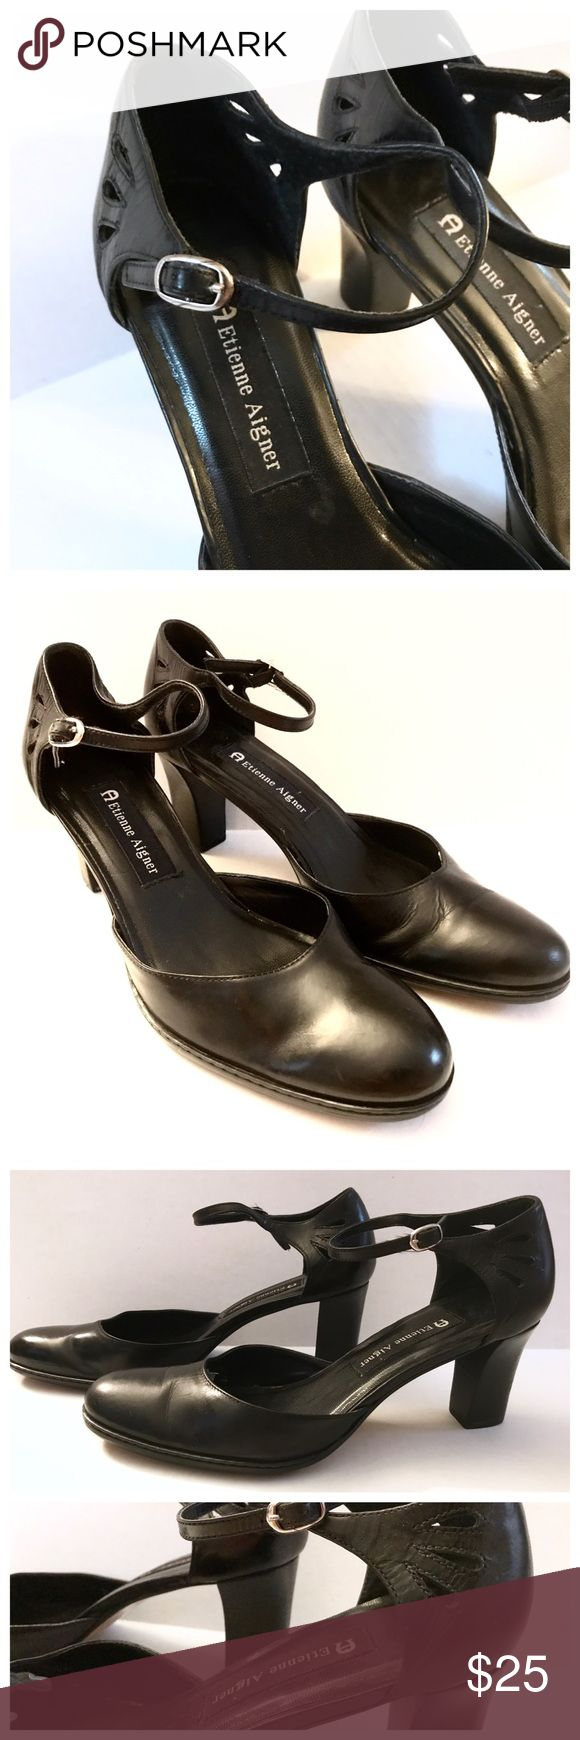 "Etienne Aigner Block Heels w/ Cutouts, 8M Etienne Aigner Block Heels w/ Cutouts  Shoes by E. Aigner  Block Heel measuring 2.5"" tall  Shoes are a size 8M  The leather has been polished & these are good to go! Etienne Aigner Shoes Heels"